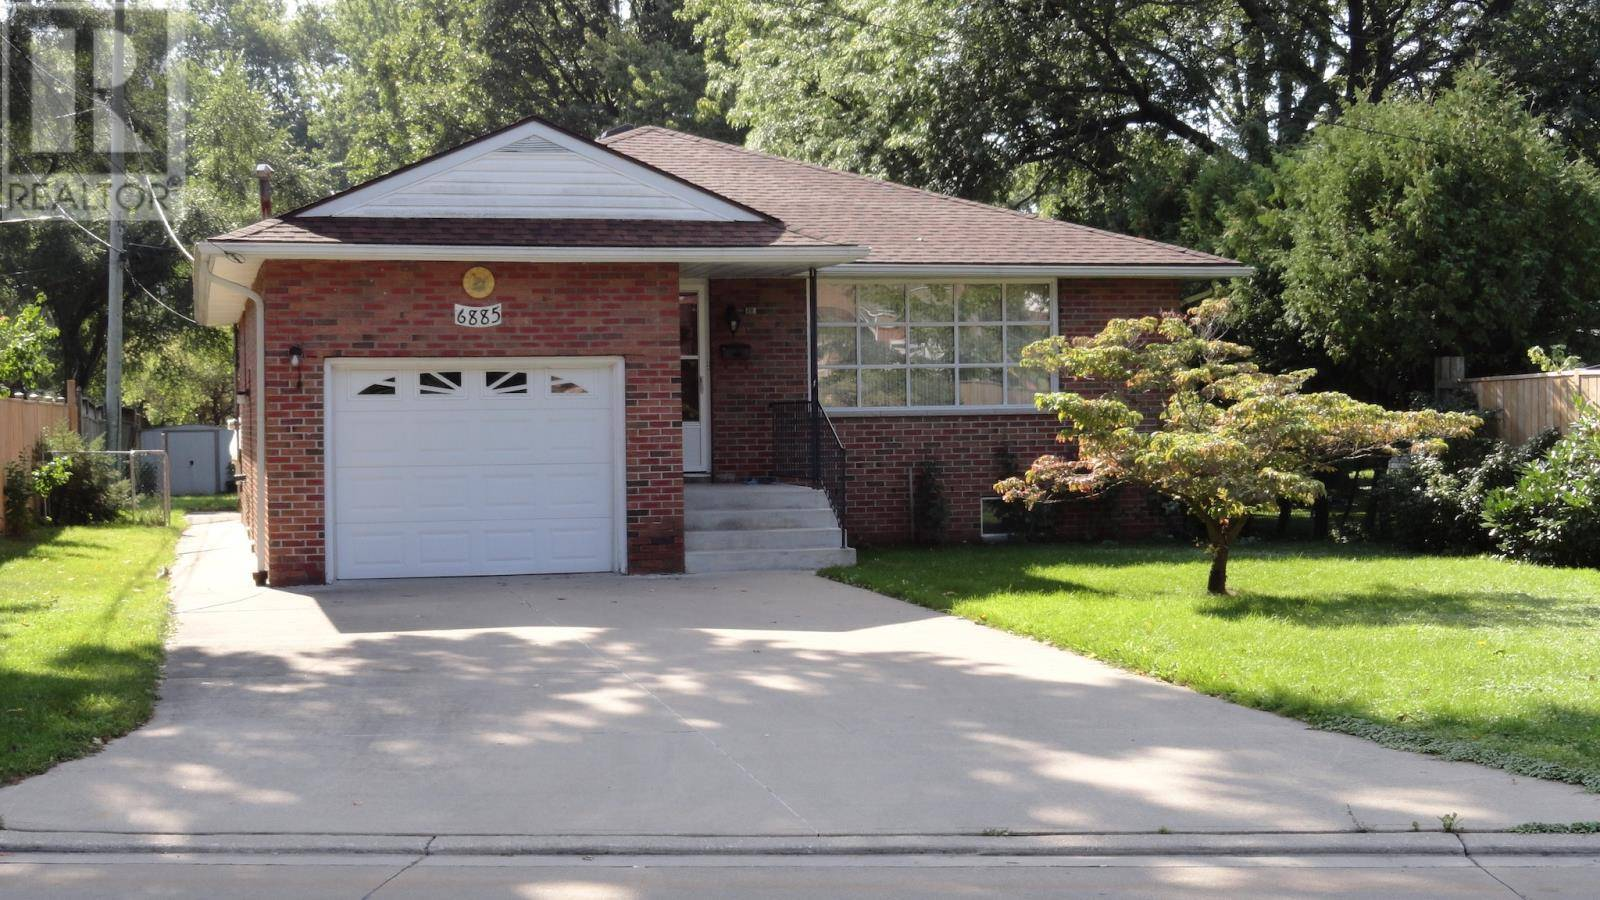 House for sale at 6885 Raymond Ave Windsor Ontario - MLS: 19026355